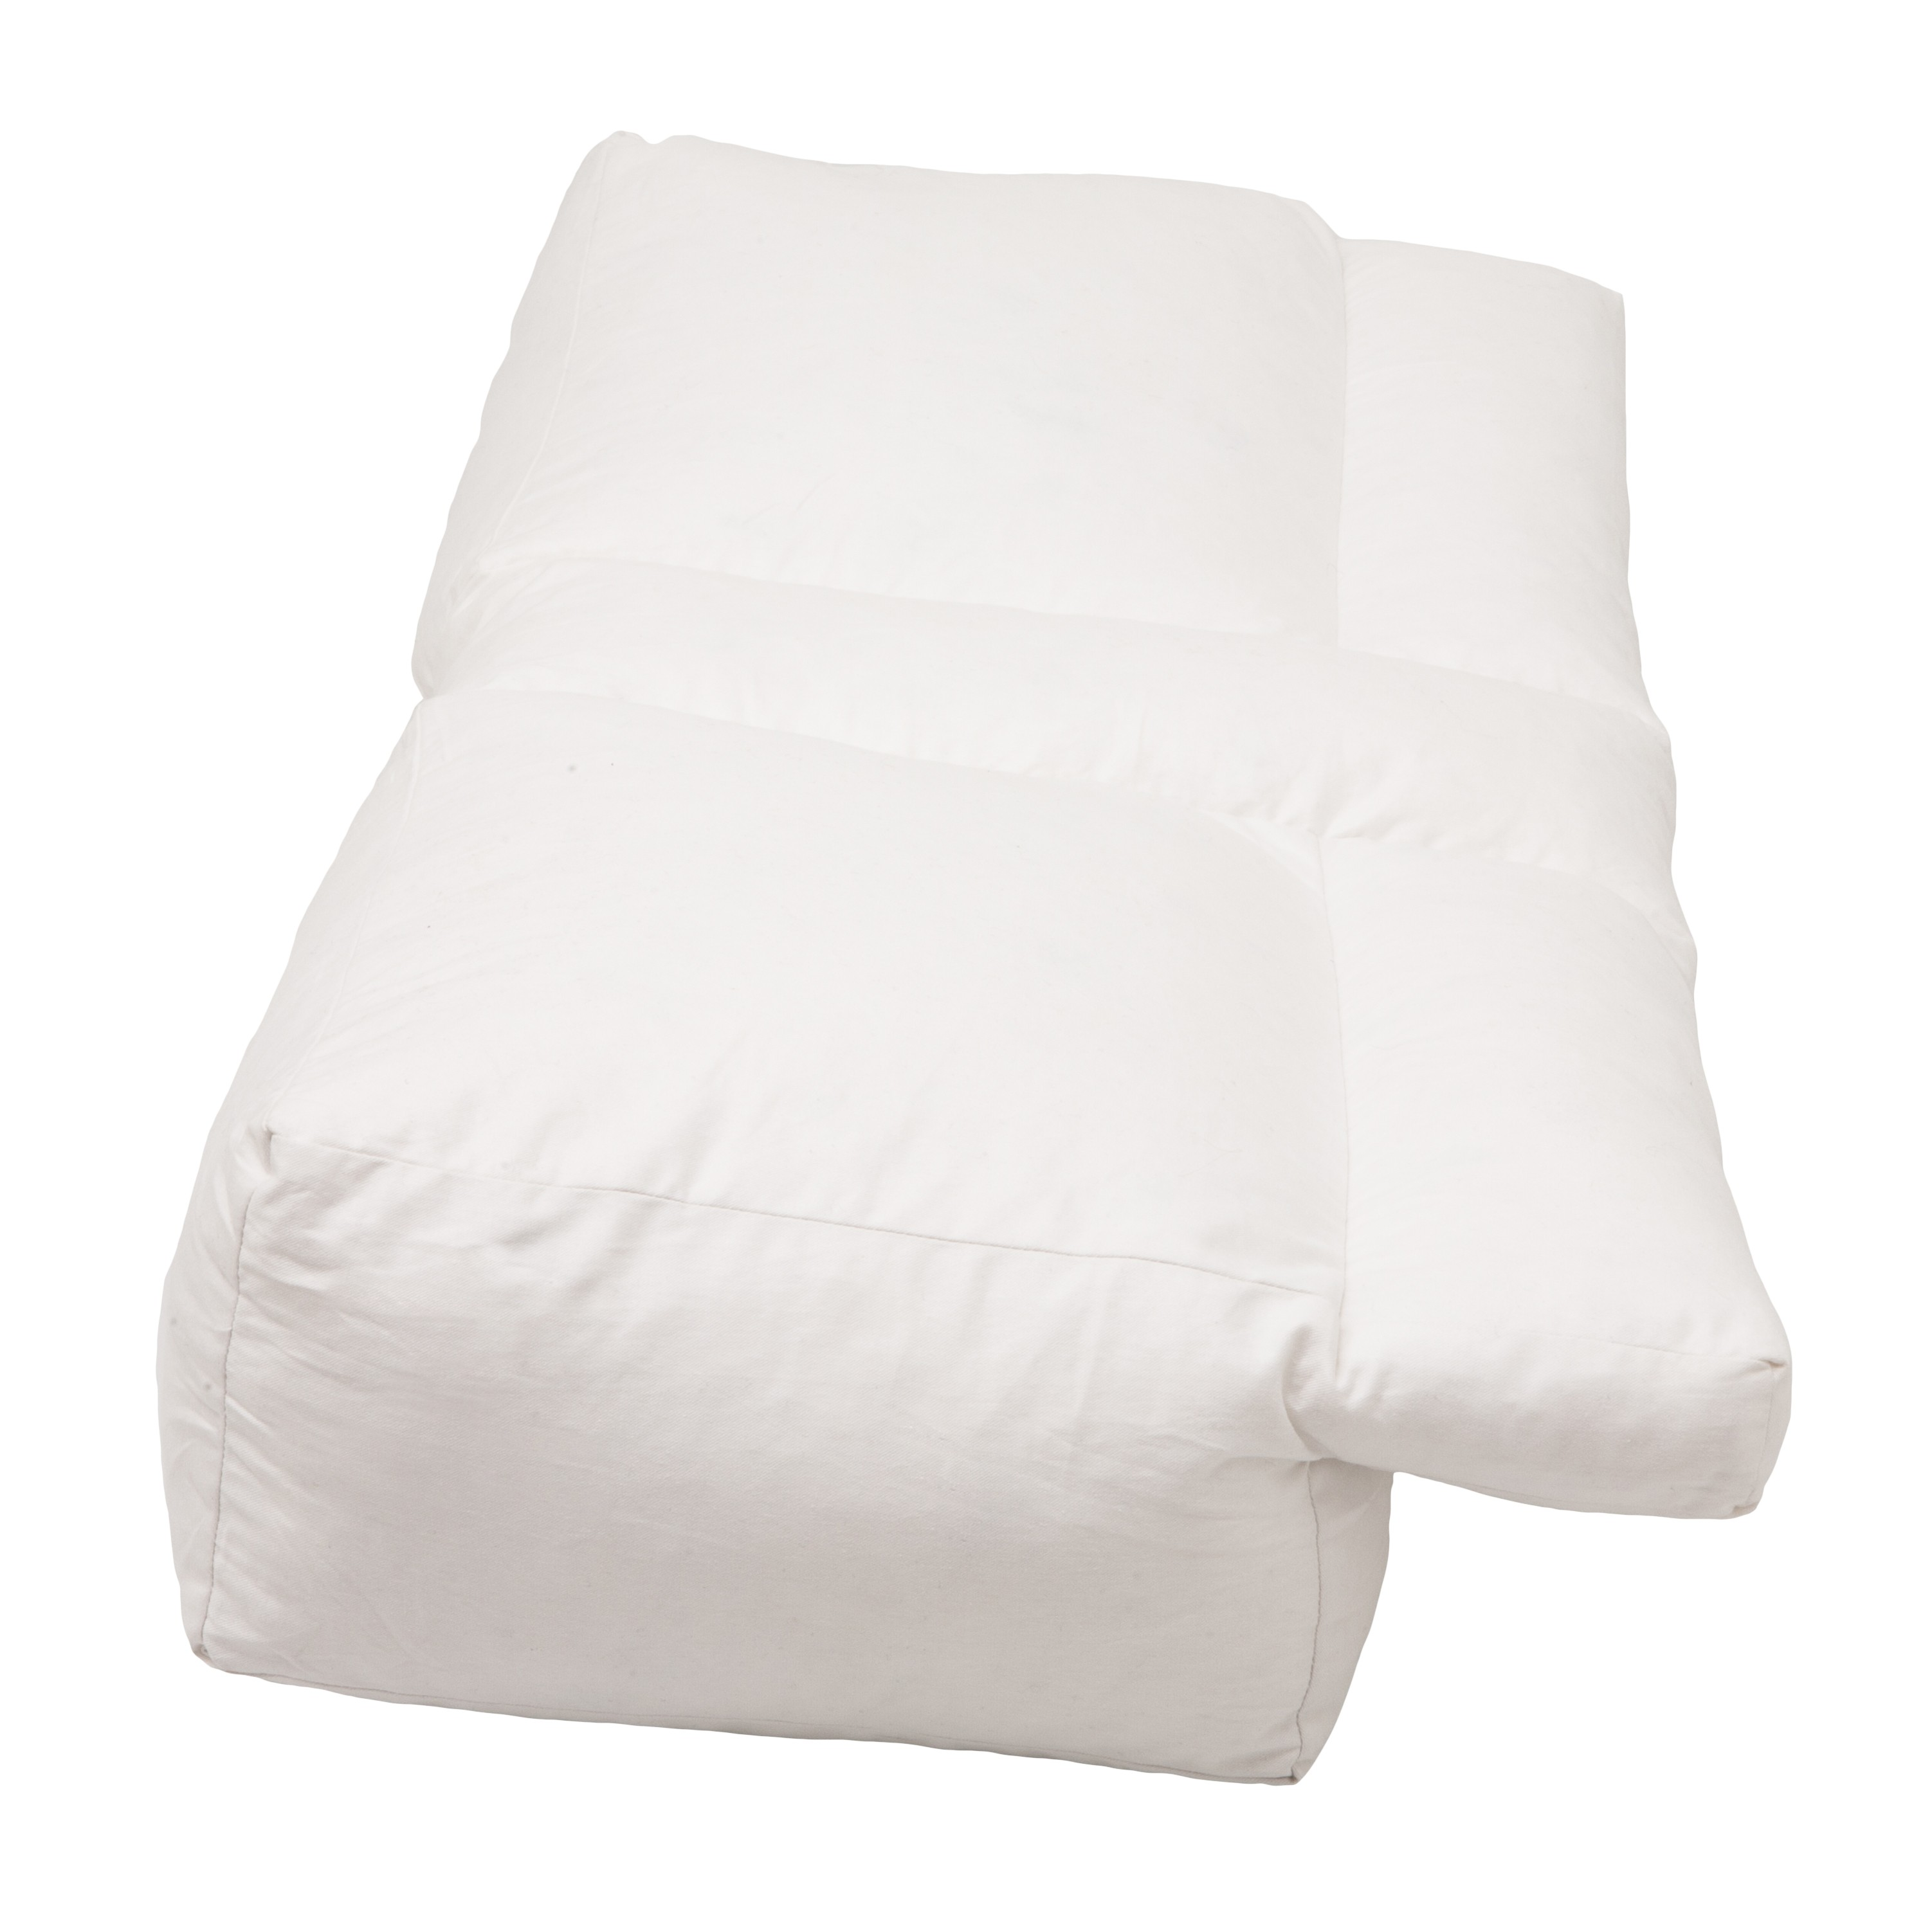 Bed Pillow with Arms | Pillow Rest | Husband Pillow with Cup Holder